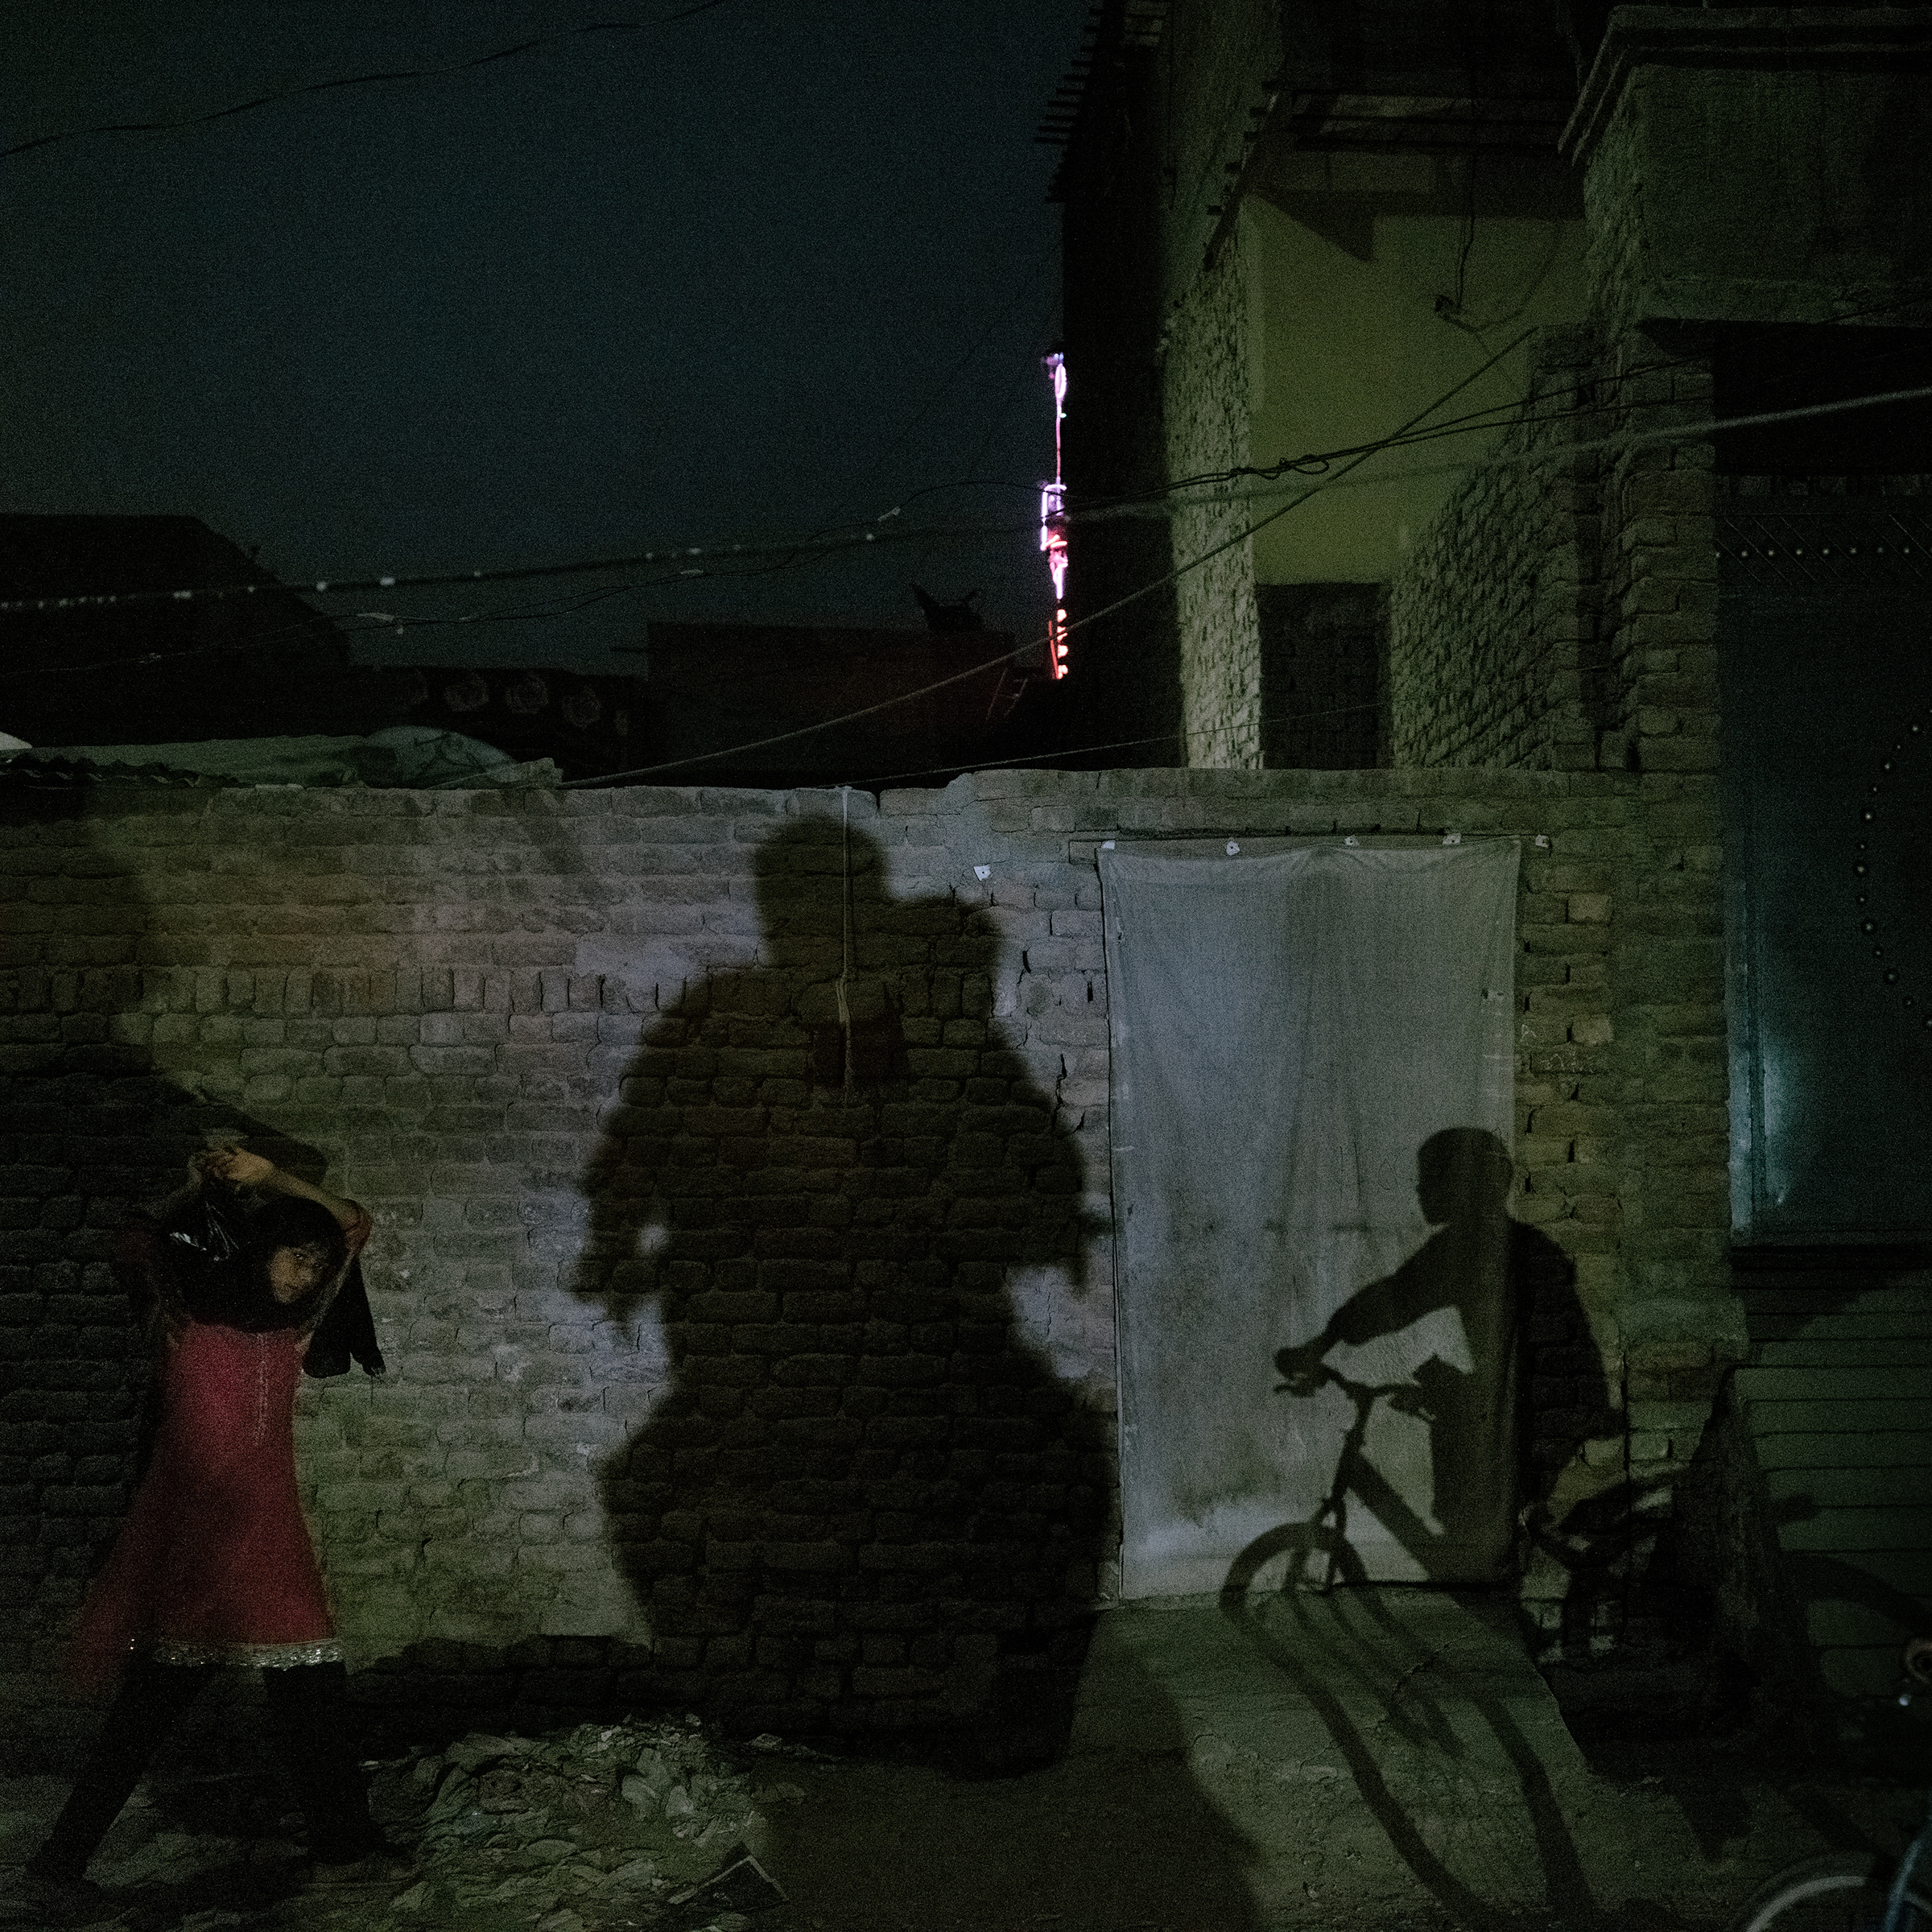 A range of activities happens at night in Jacobabad on June 27: a girl returns home with groceries; a boy rides a bicycle; and a father and son ride home on a motorcycle.